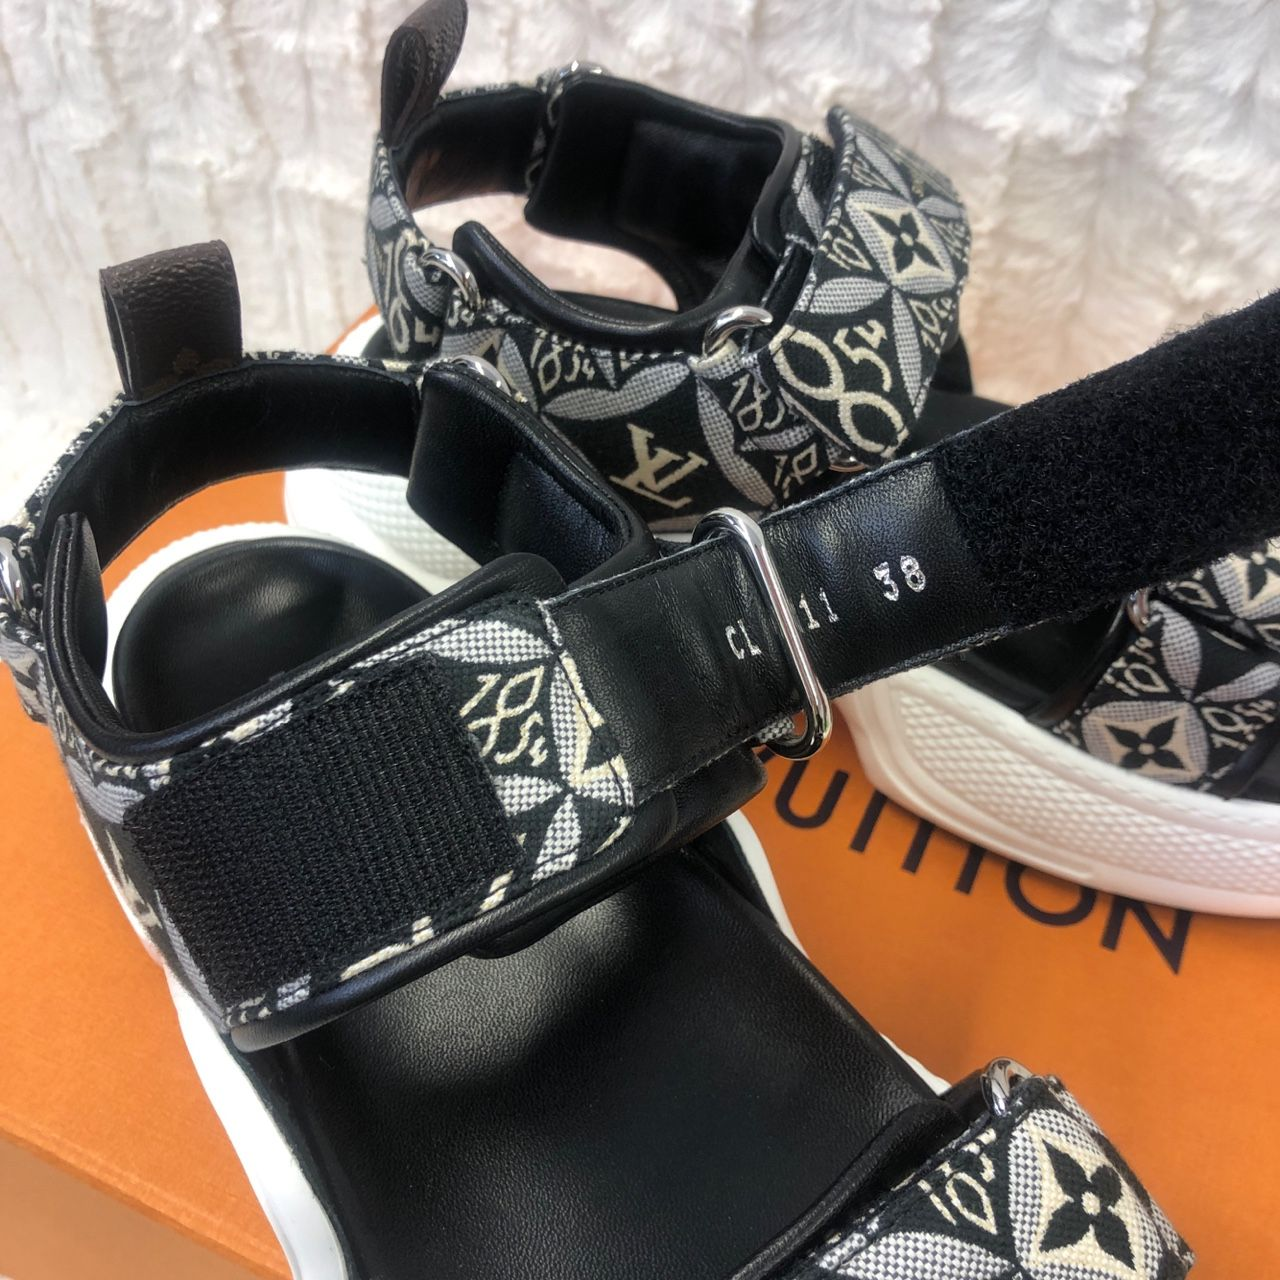 Louis Vuitton LV Archlight Sandals 1A8UOU